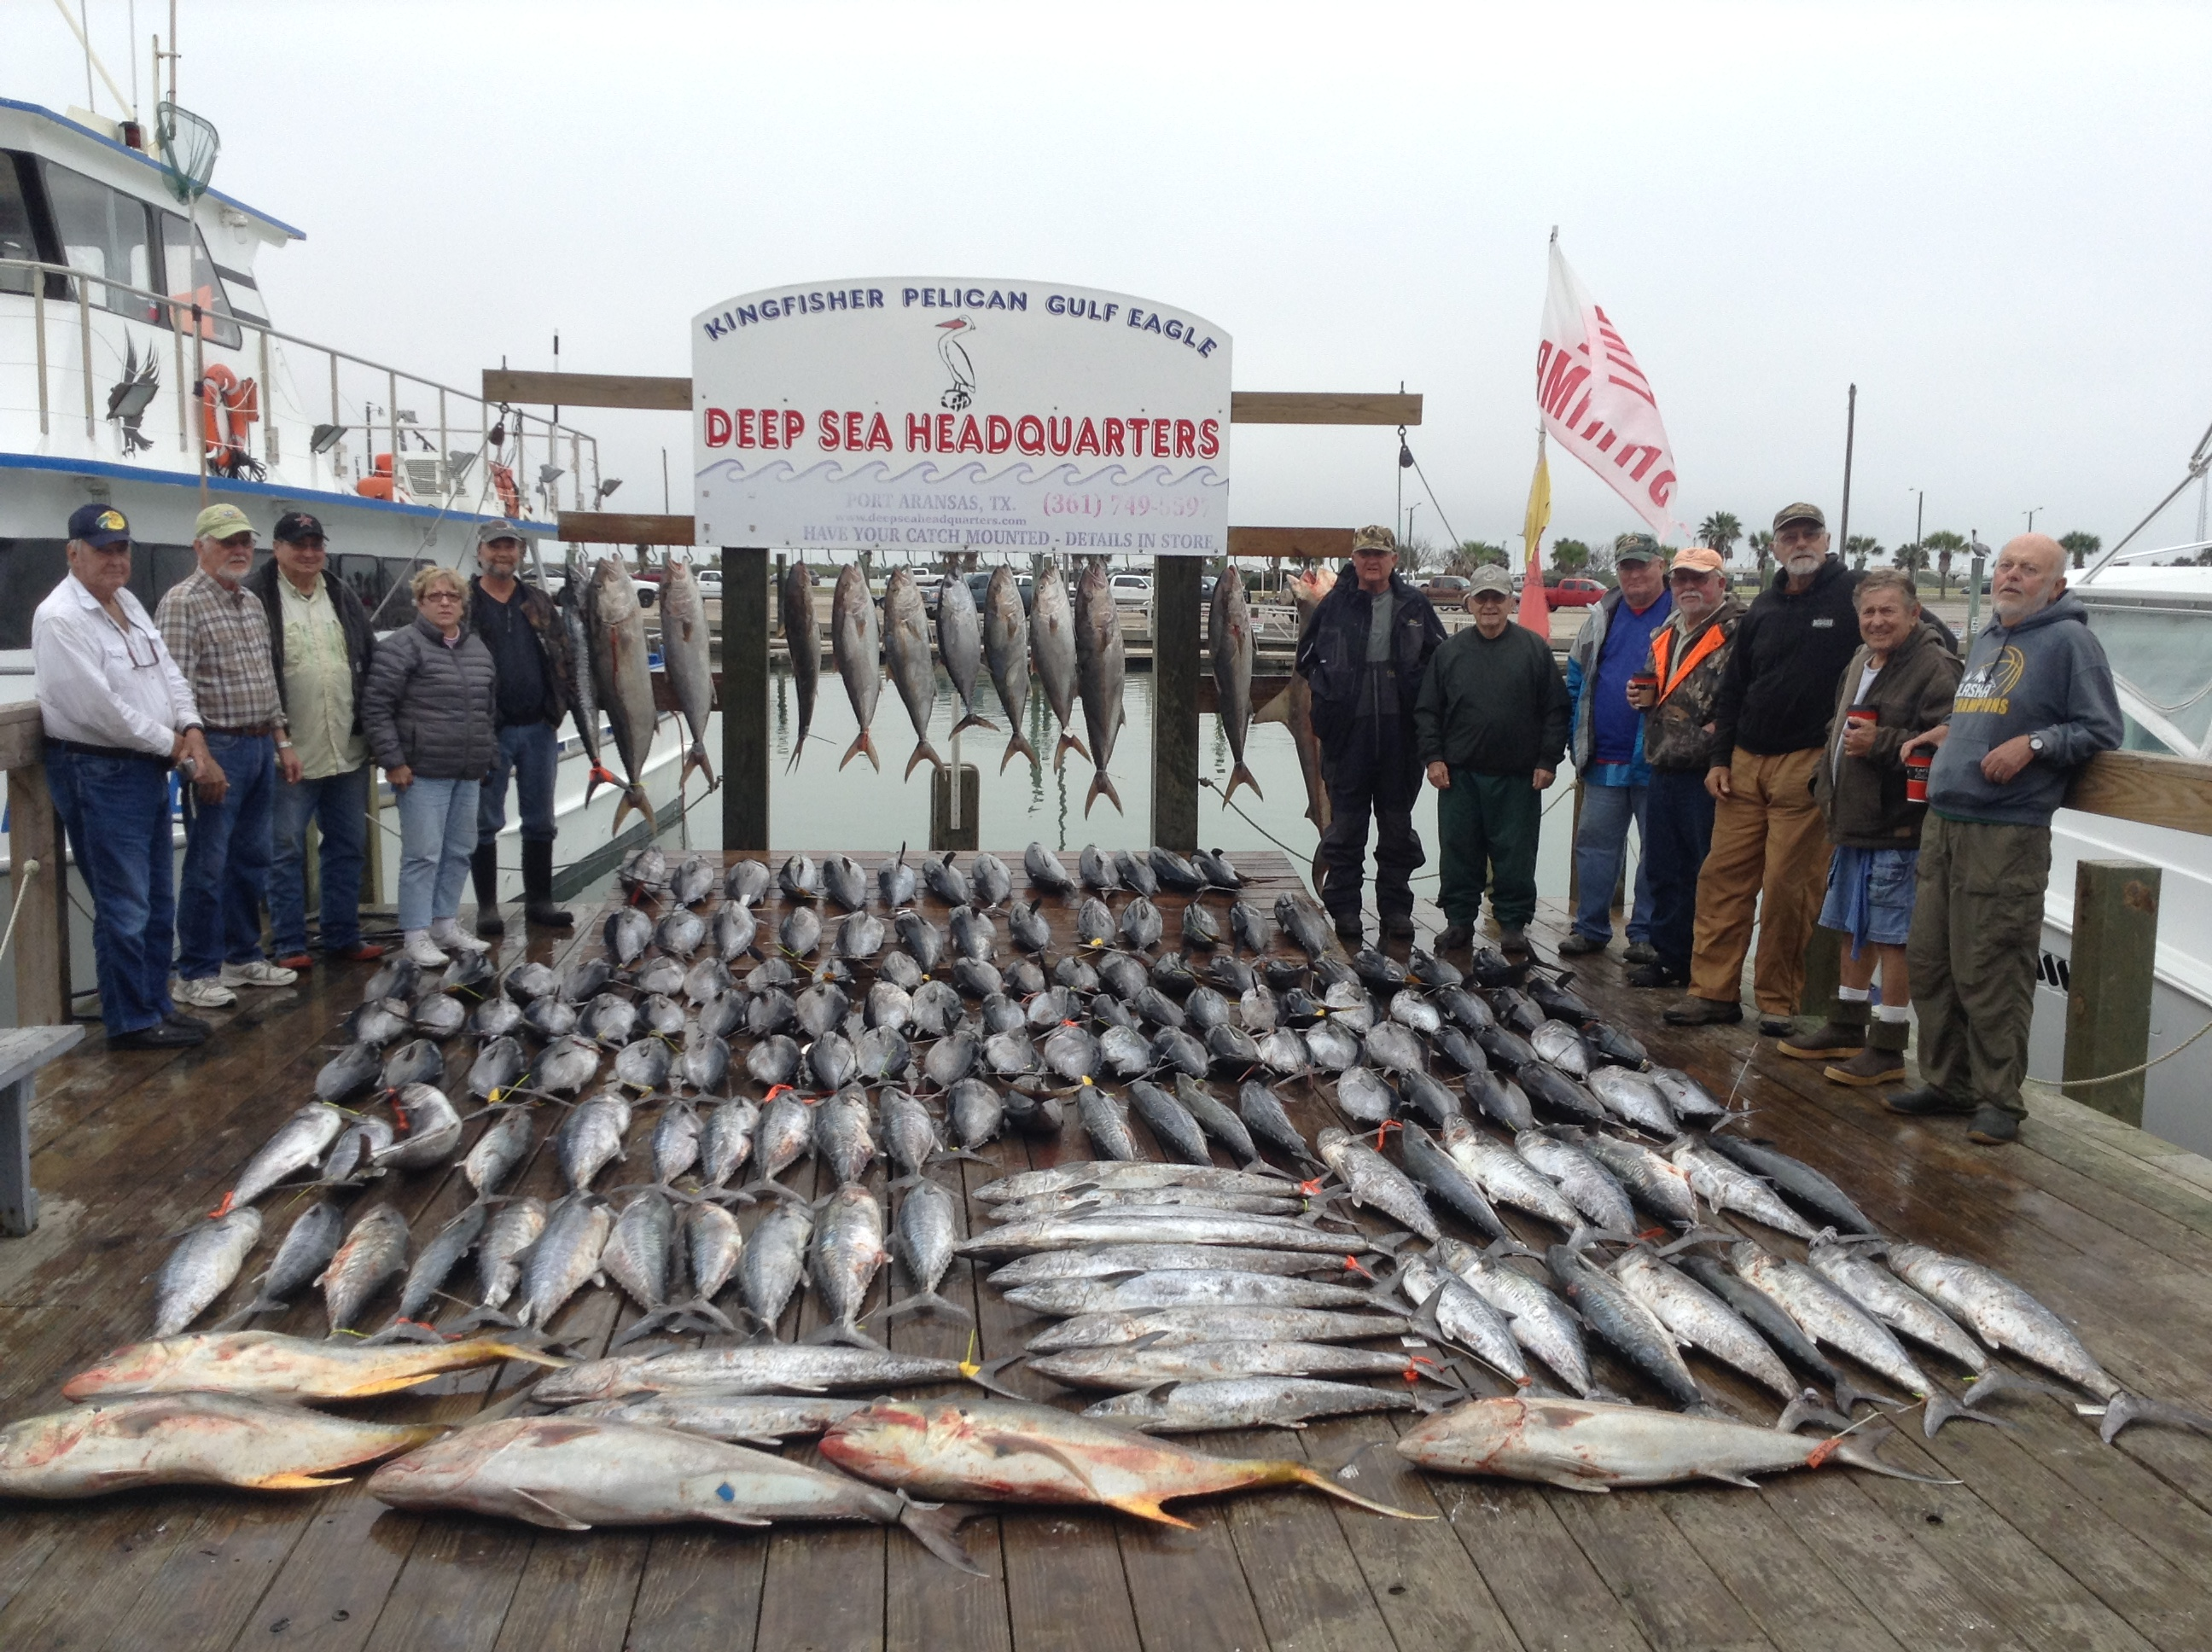 Port aransas fishing report 01 08 2016 for Fishing report port aransas